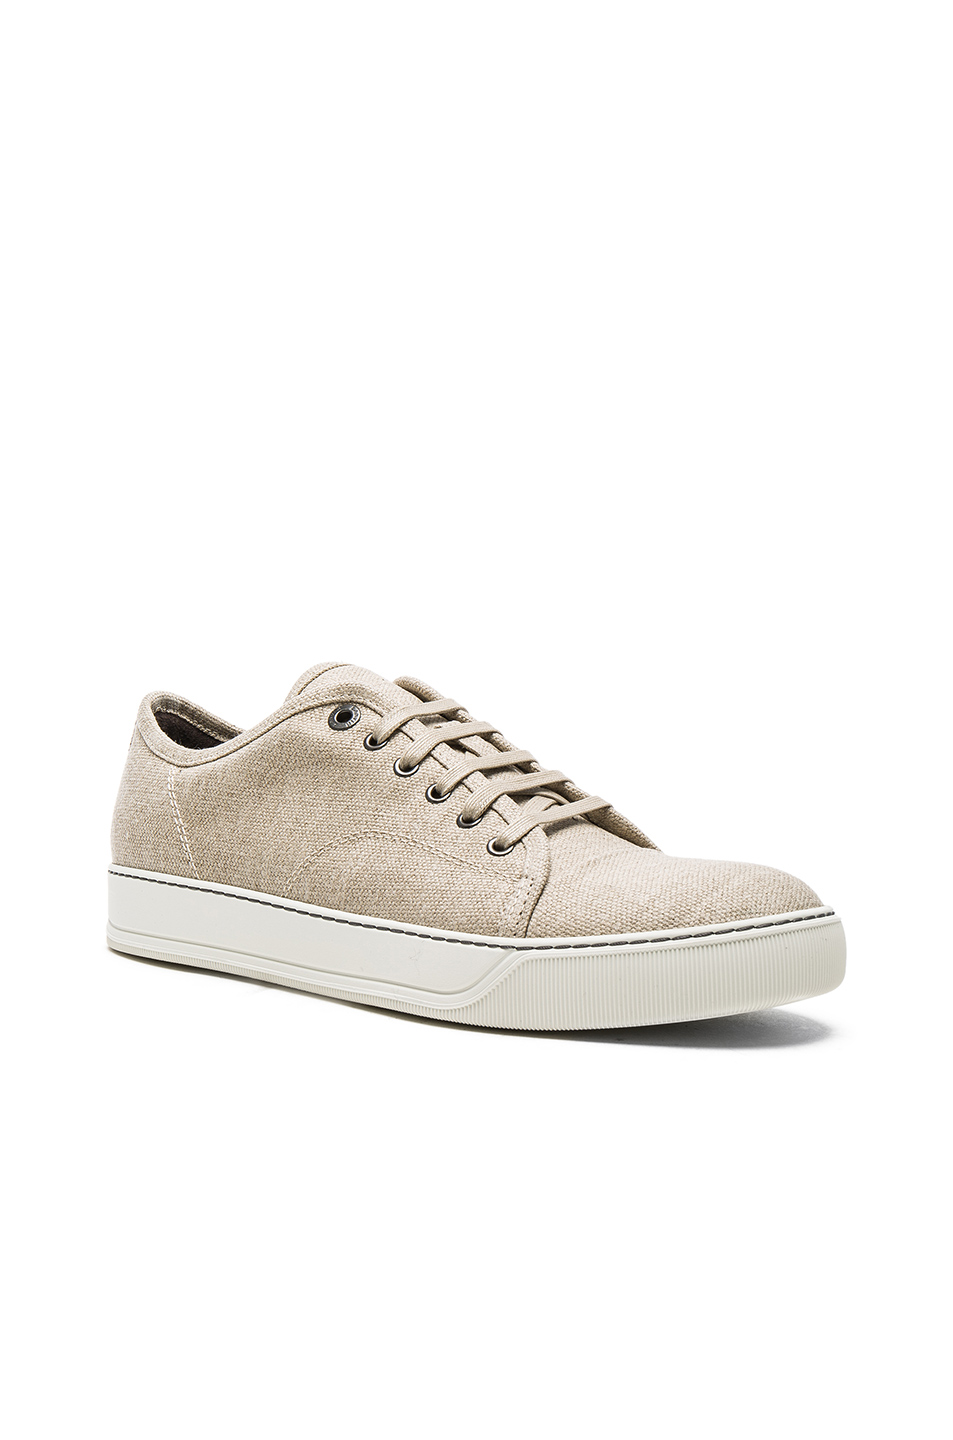 Photo of Lanvin Waxy Woven Linen Low Top Sneakers in Neutrals - shop Lanvin menswear